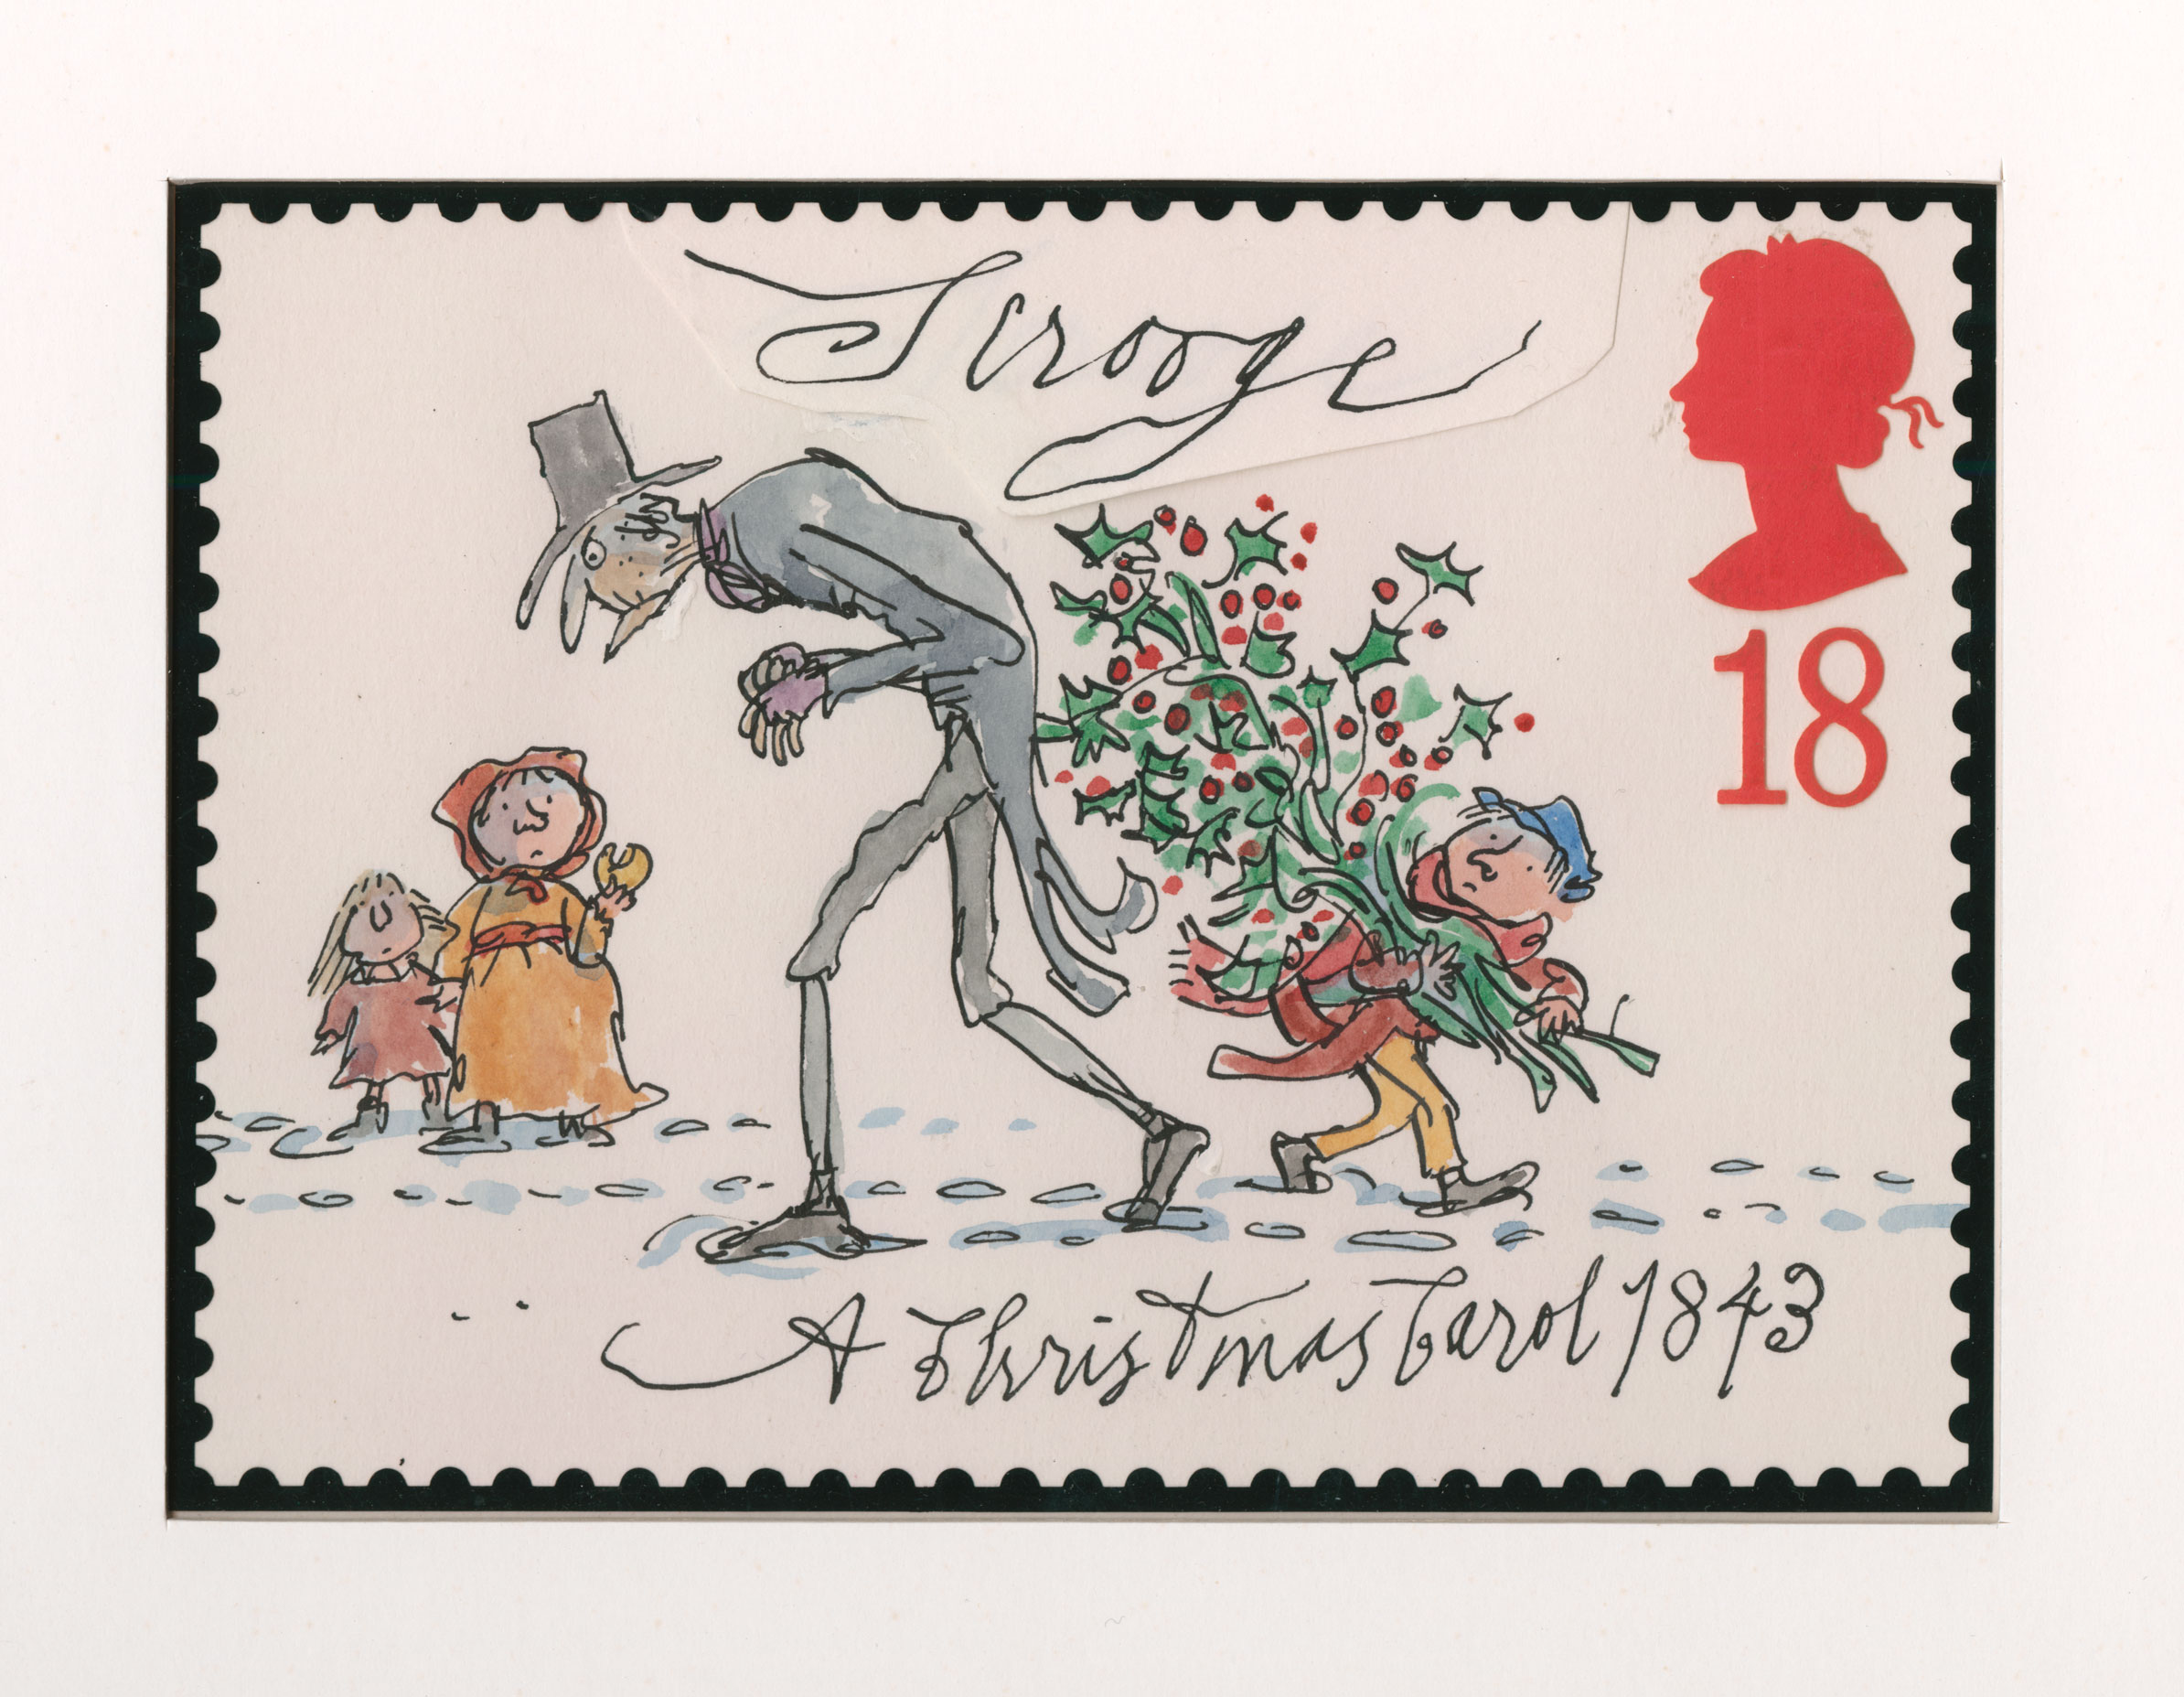 Illustration of a old man hunched over with a boy carrying holly in the background.